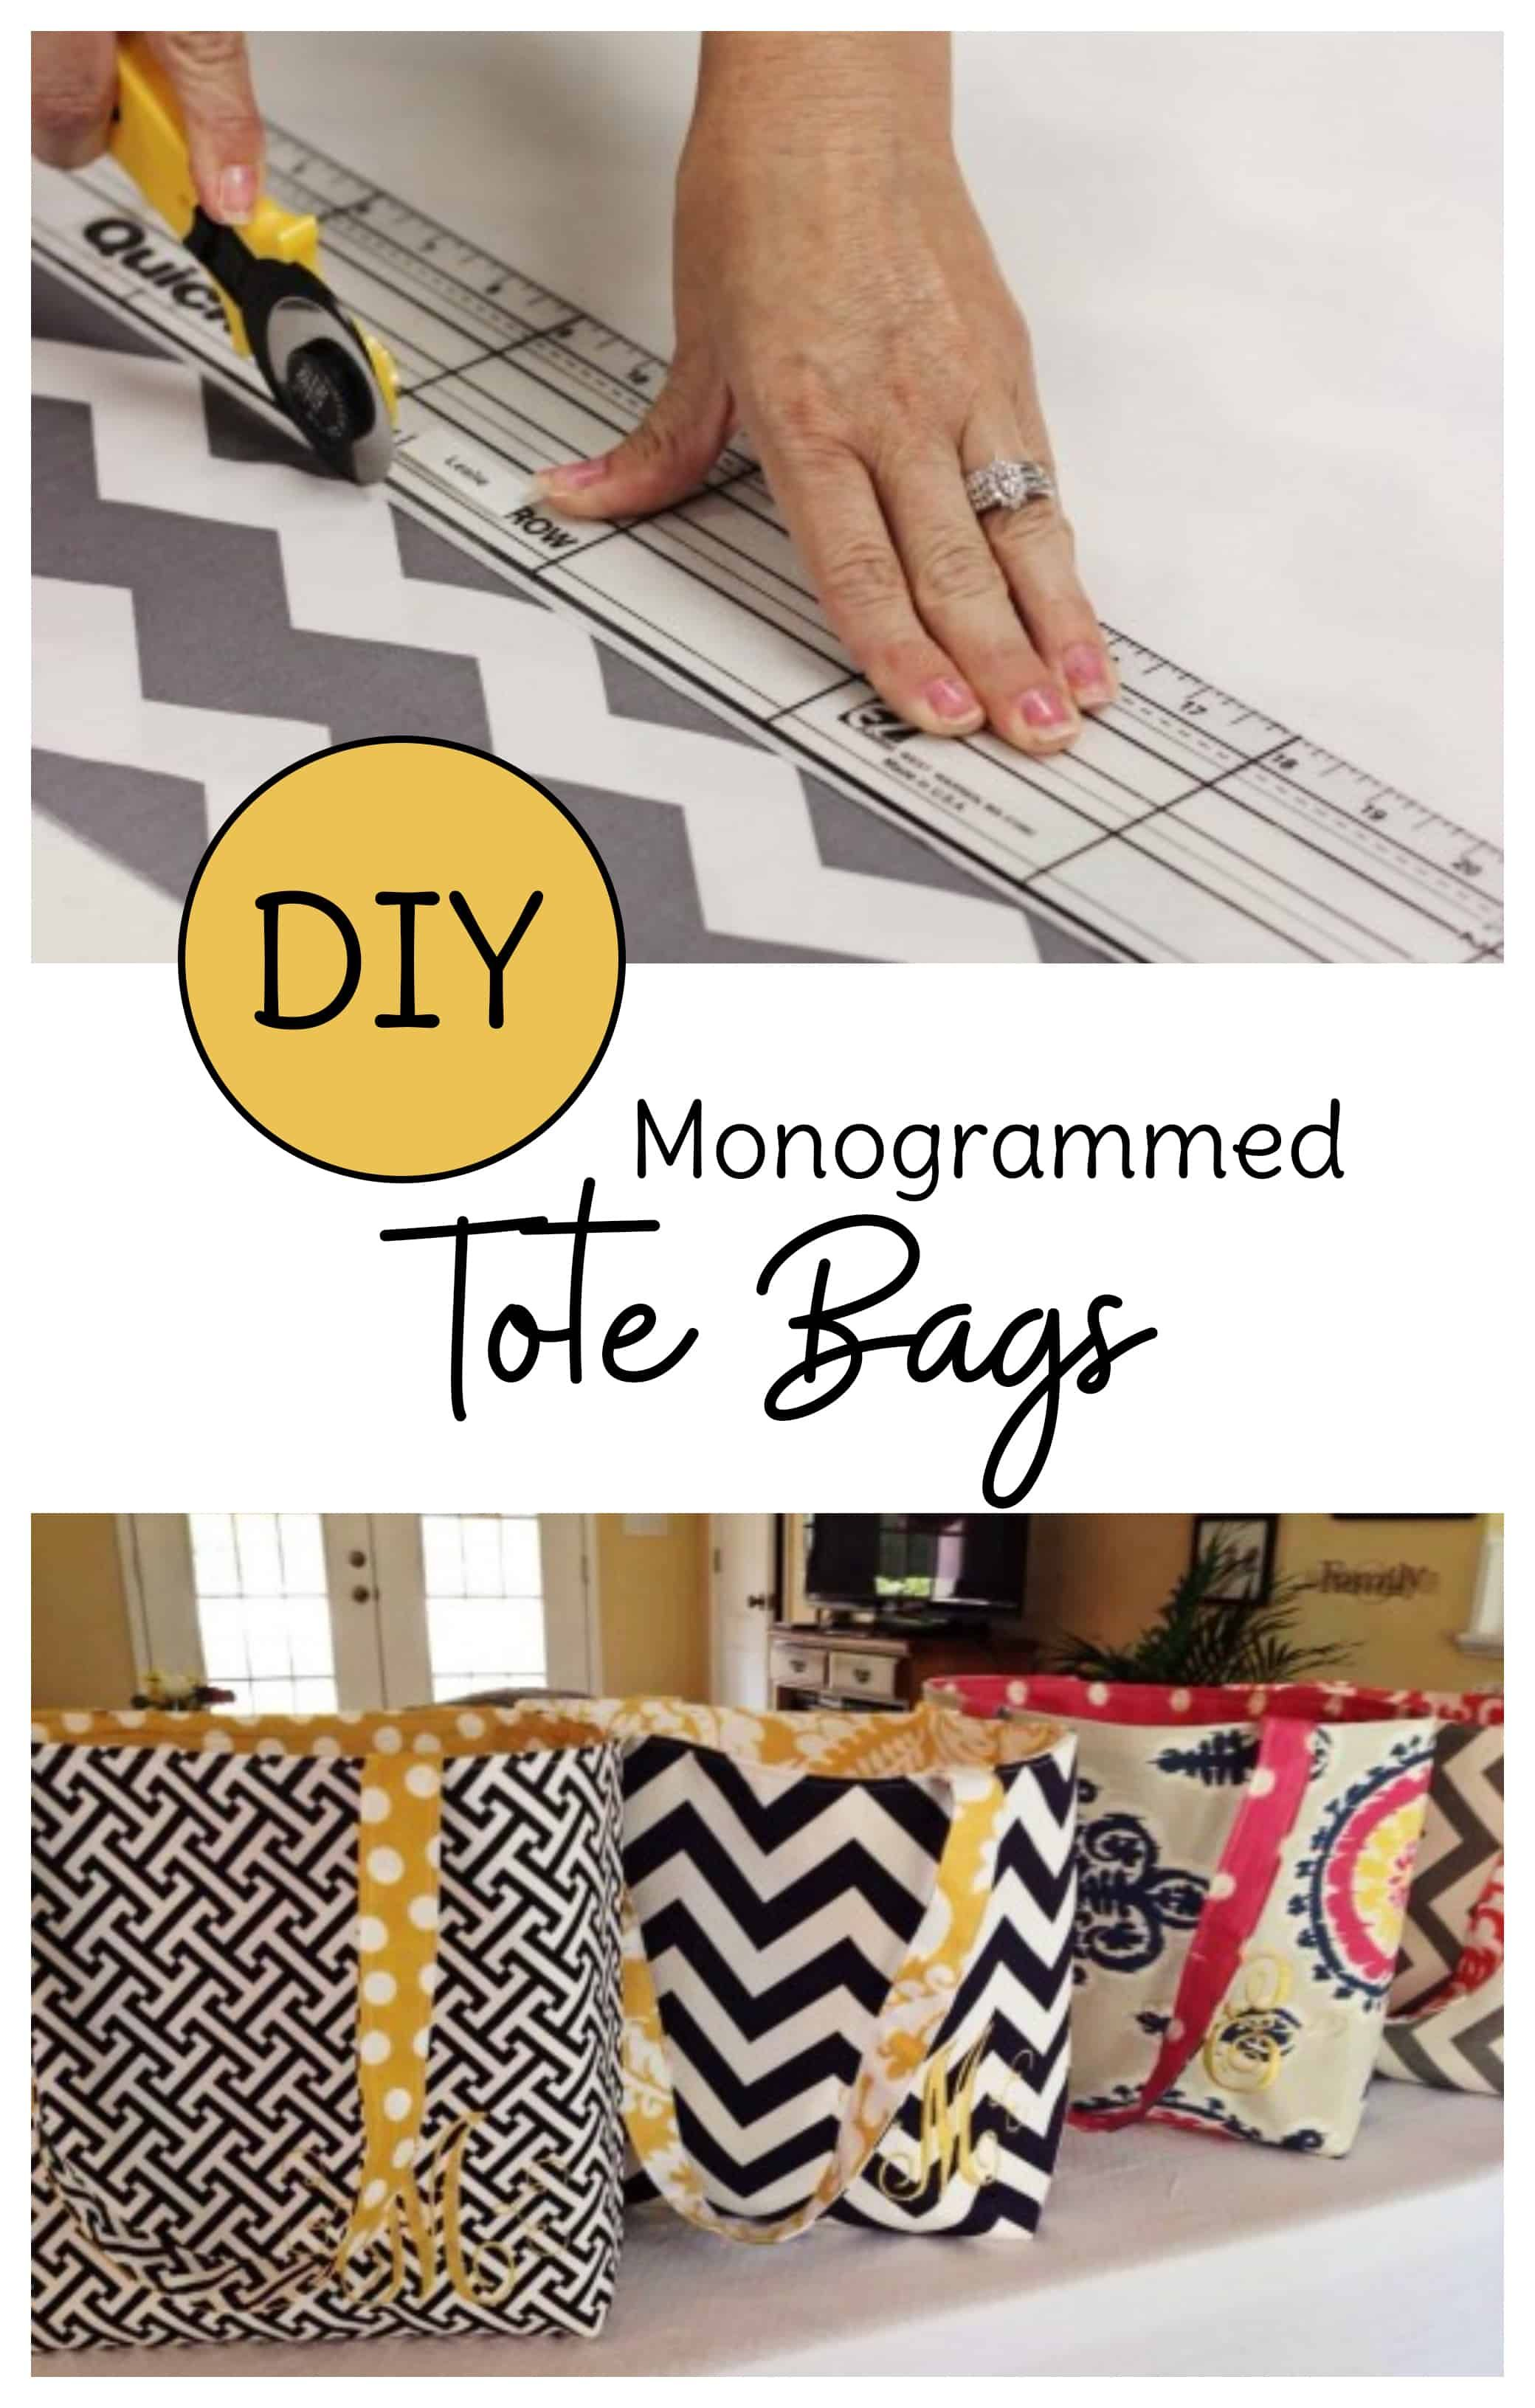 Looking for sewing projects for beginners? Make your own DIY tote bags with this free tote bag patt